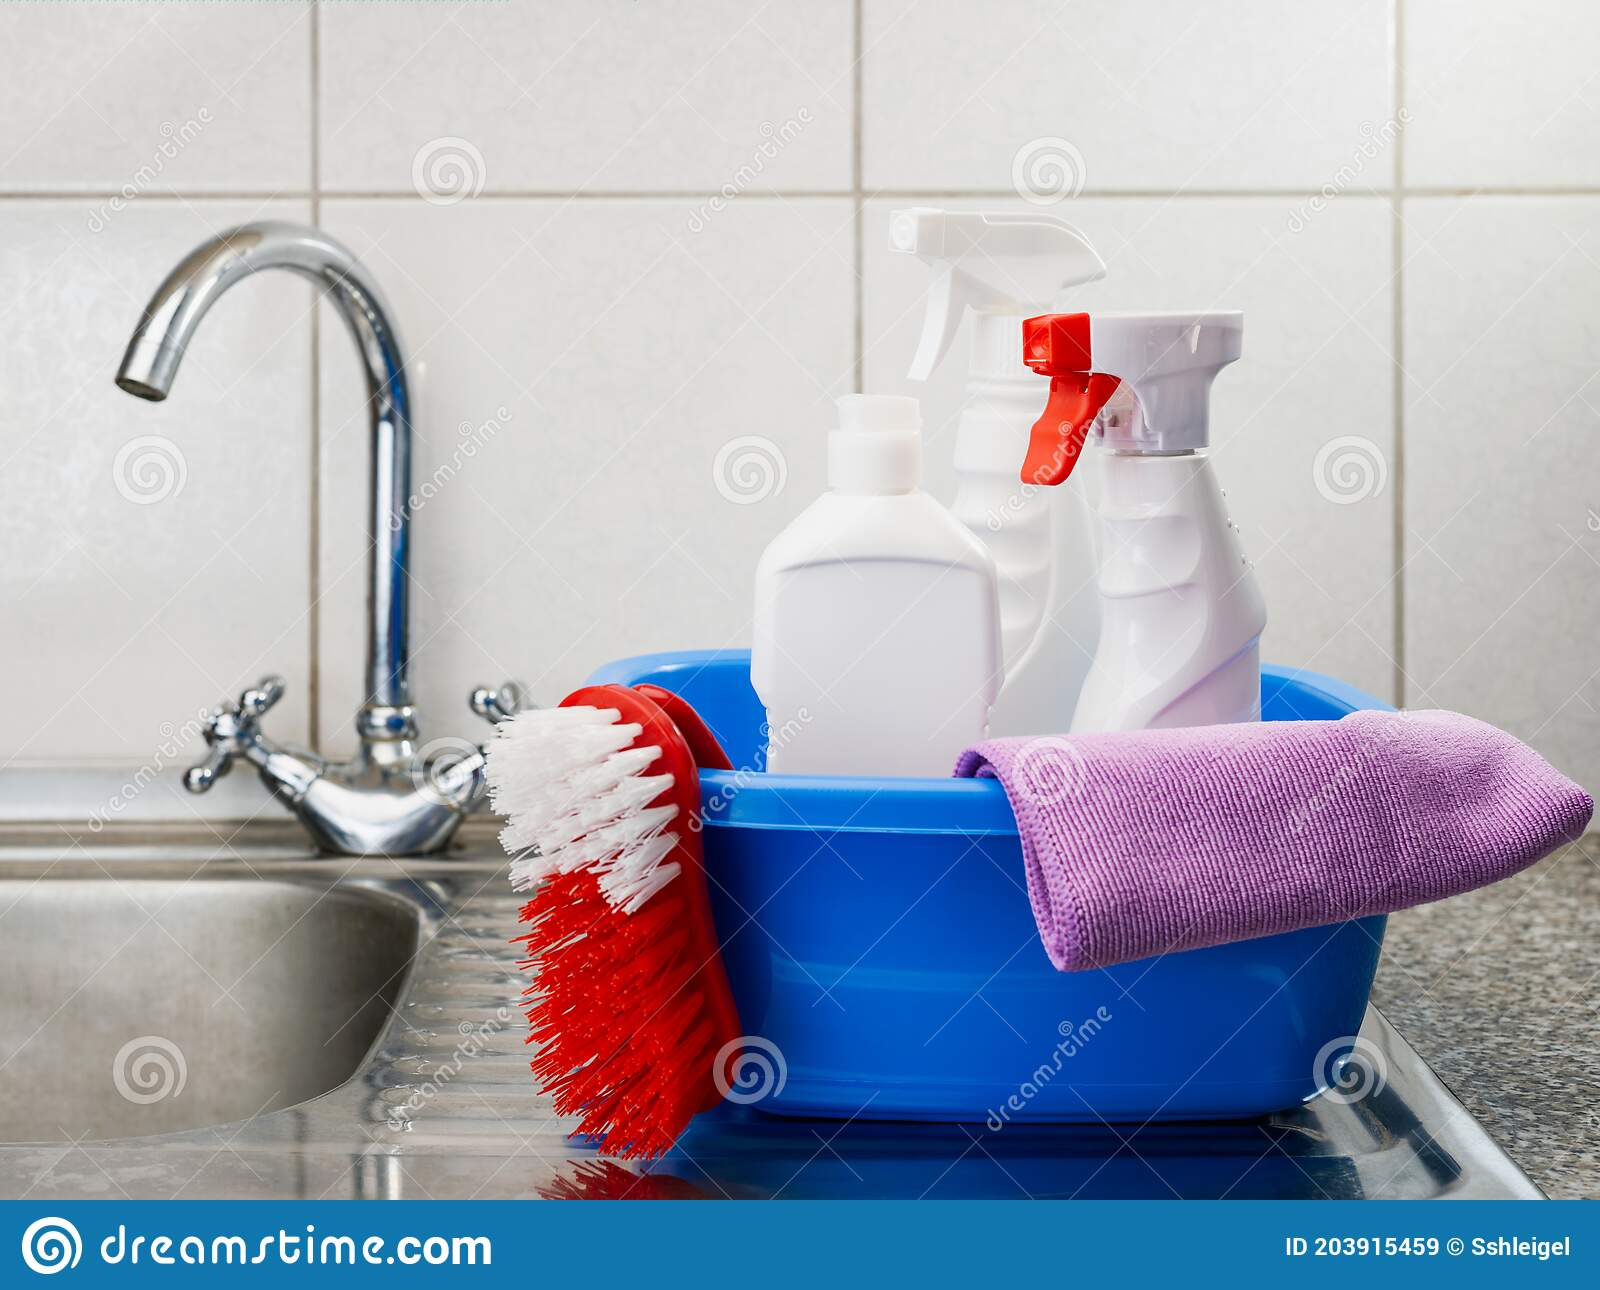 cleaning products in a basin on a kitchen sink stock image image of messy mess 203915459